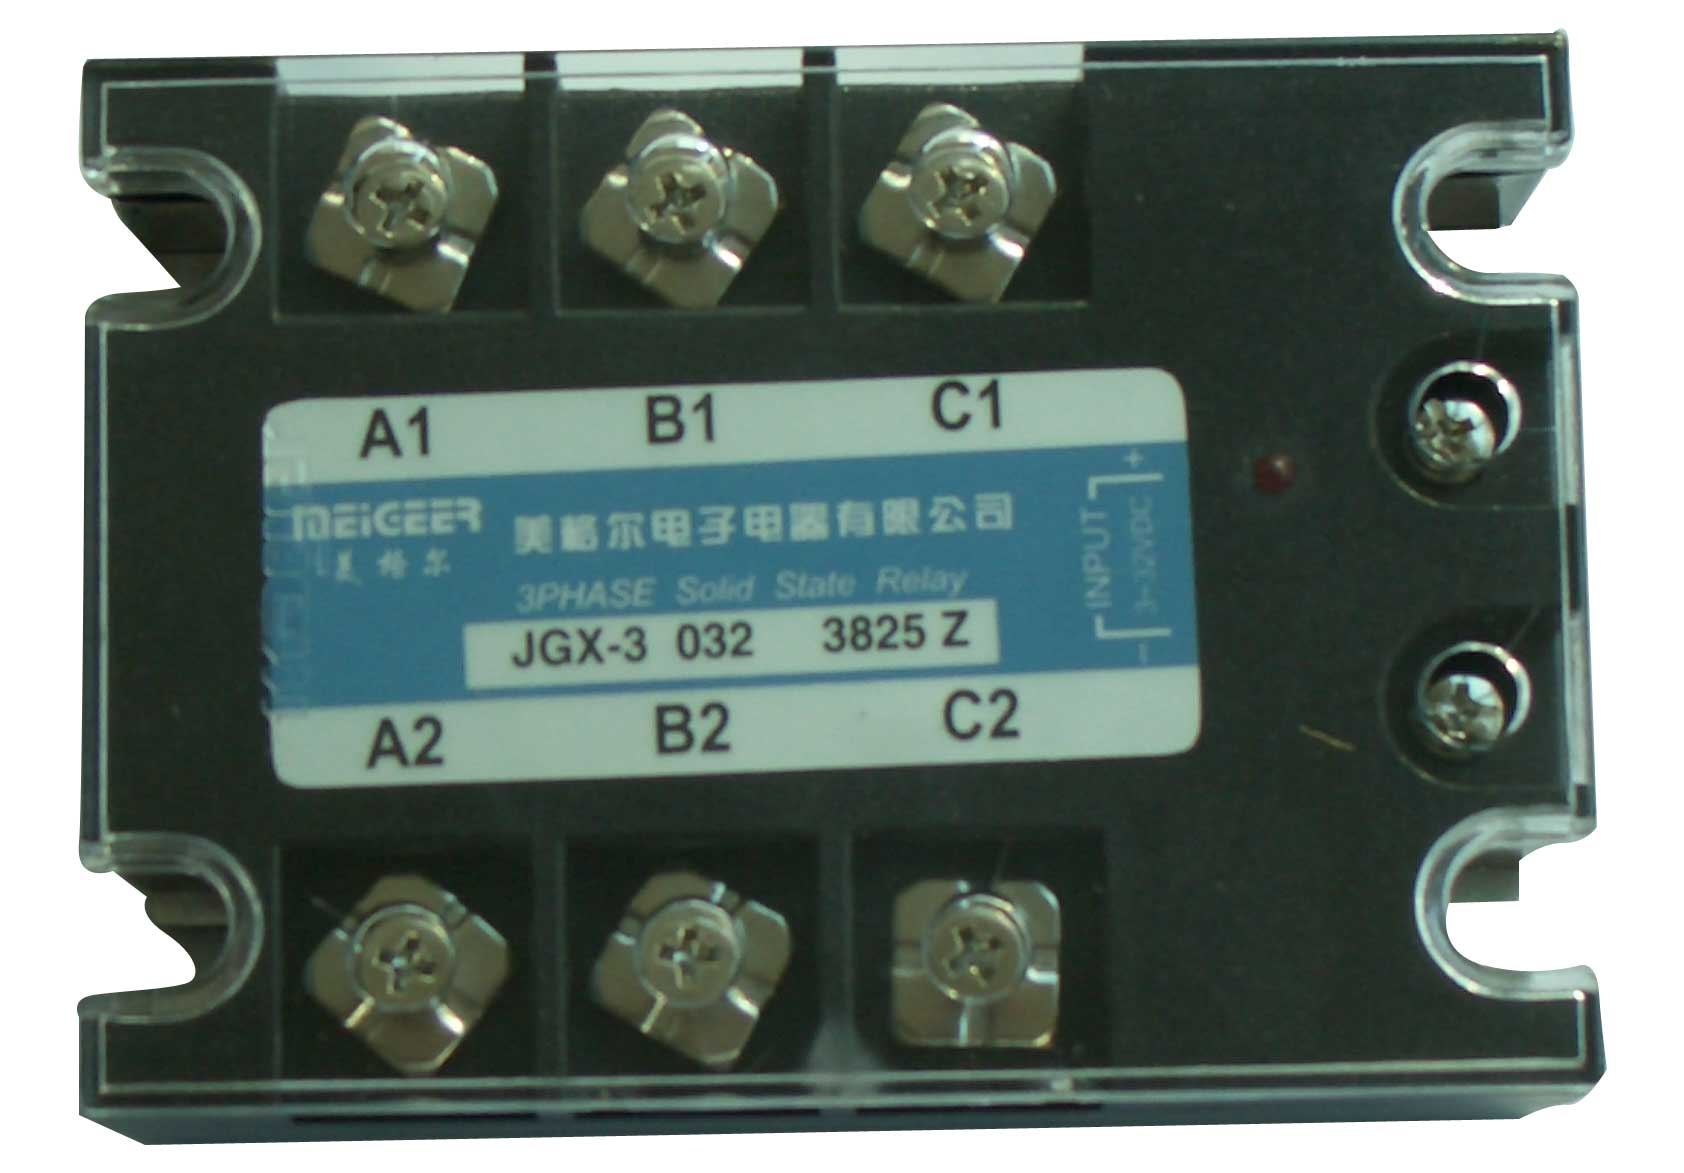 Triphase Exchange Solid State Relay (Трехфазного Exchange Solid State Relay)